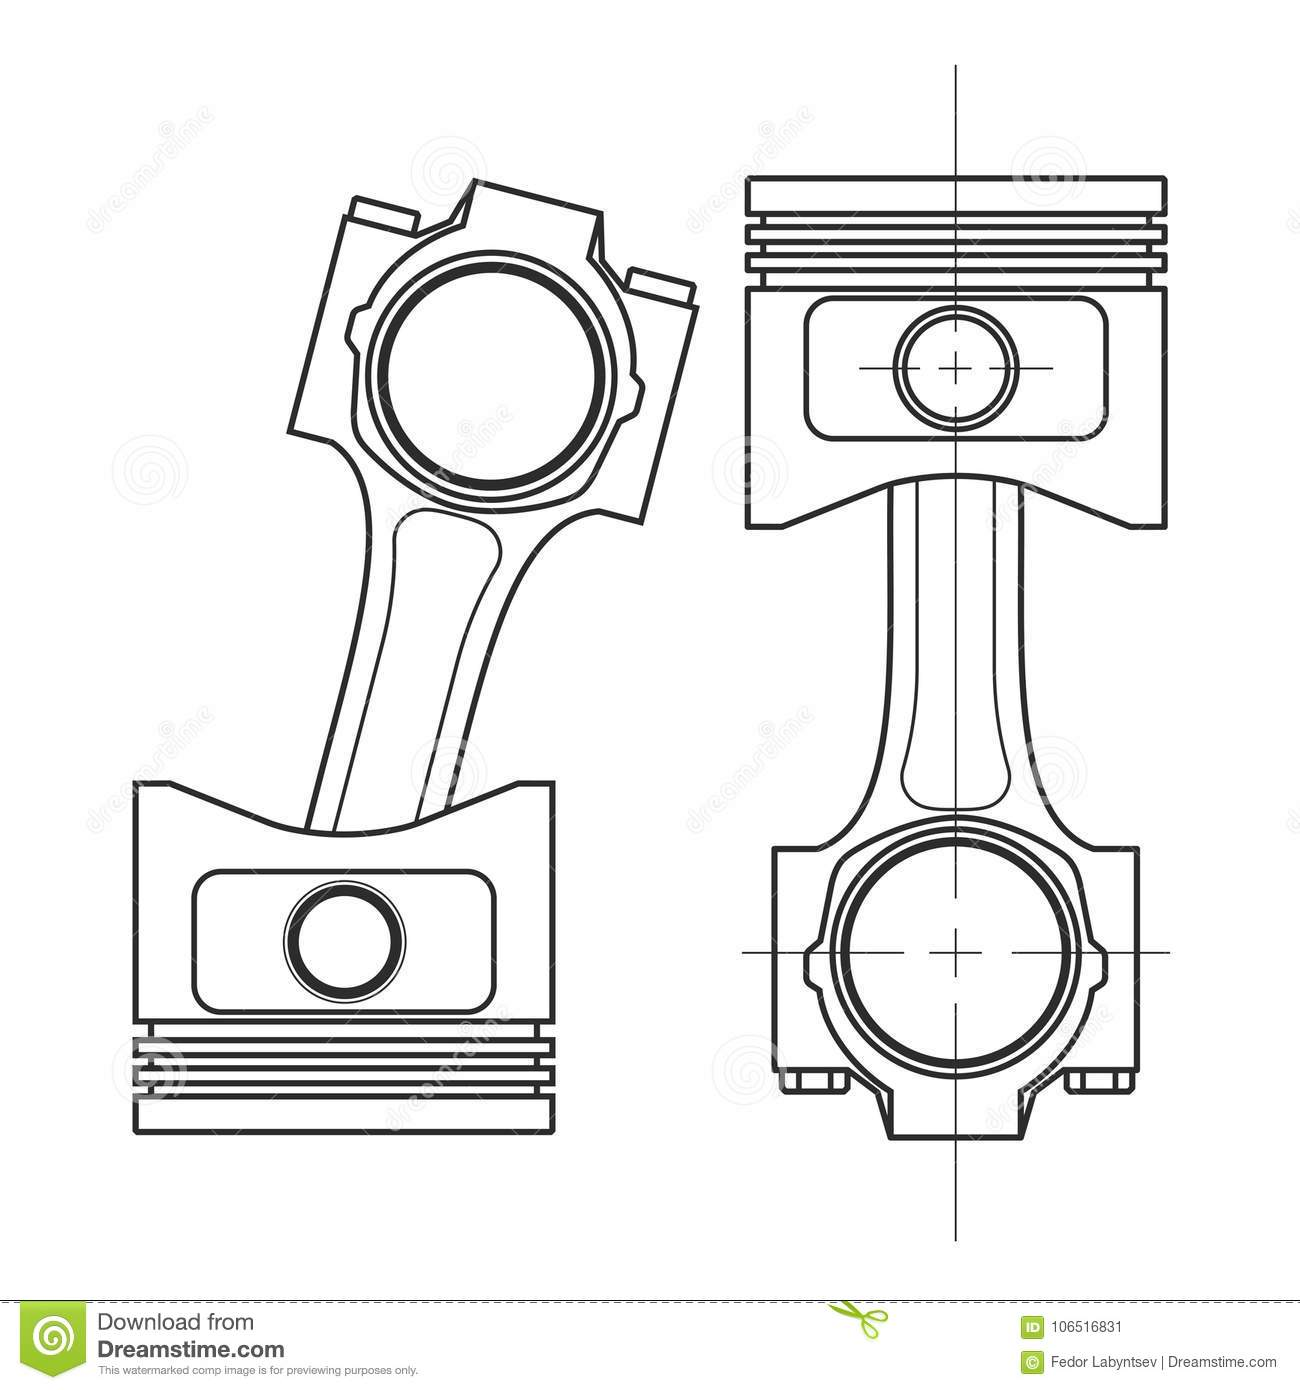 Technical Drawing Of A Piston Vector Illustration Stock